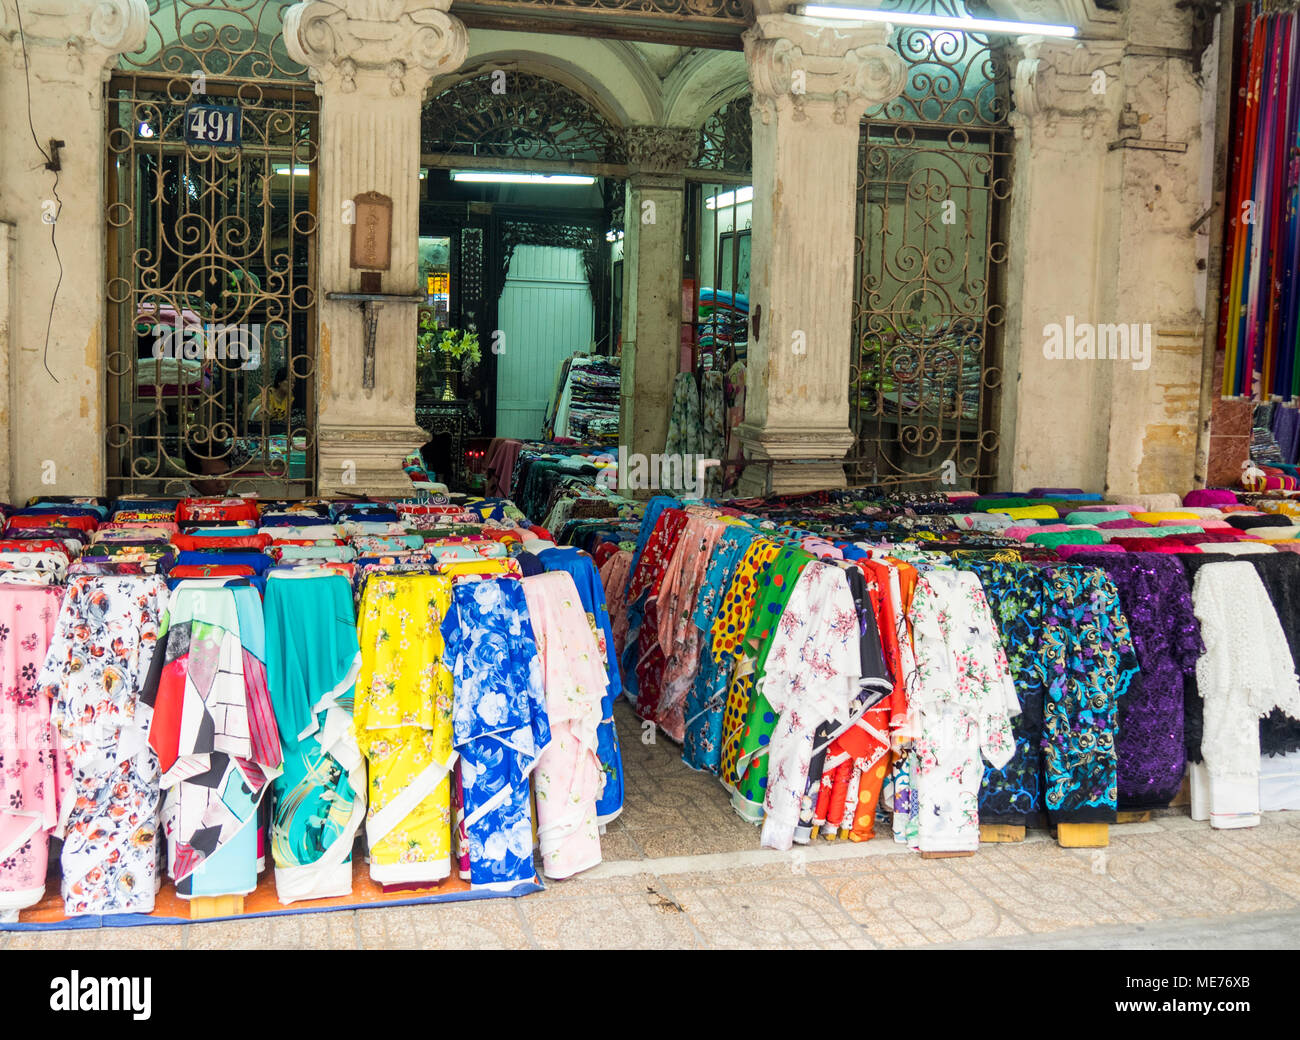 Bolts of fabric on display in a textile market located in a French colonial building in Ho Chi Minh City, Vietnam.Stock Photo